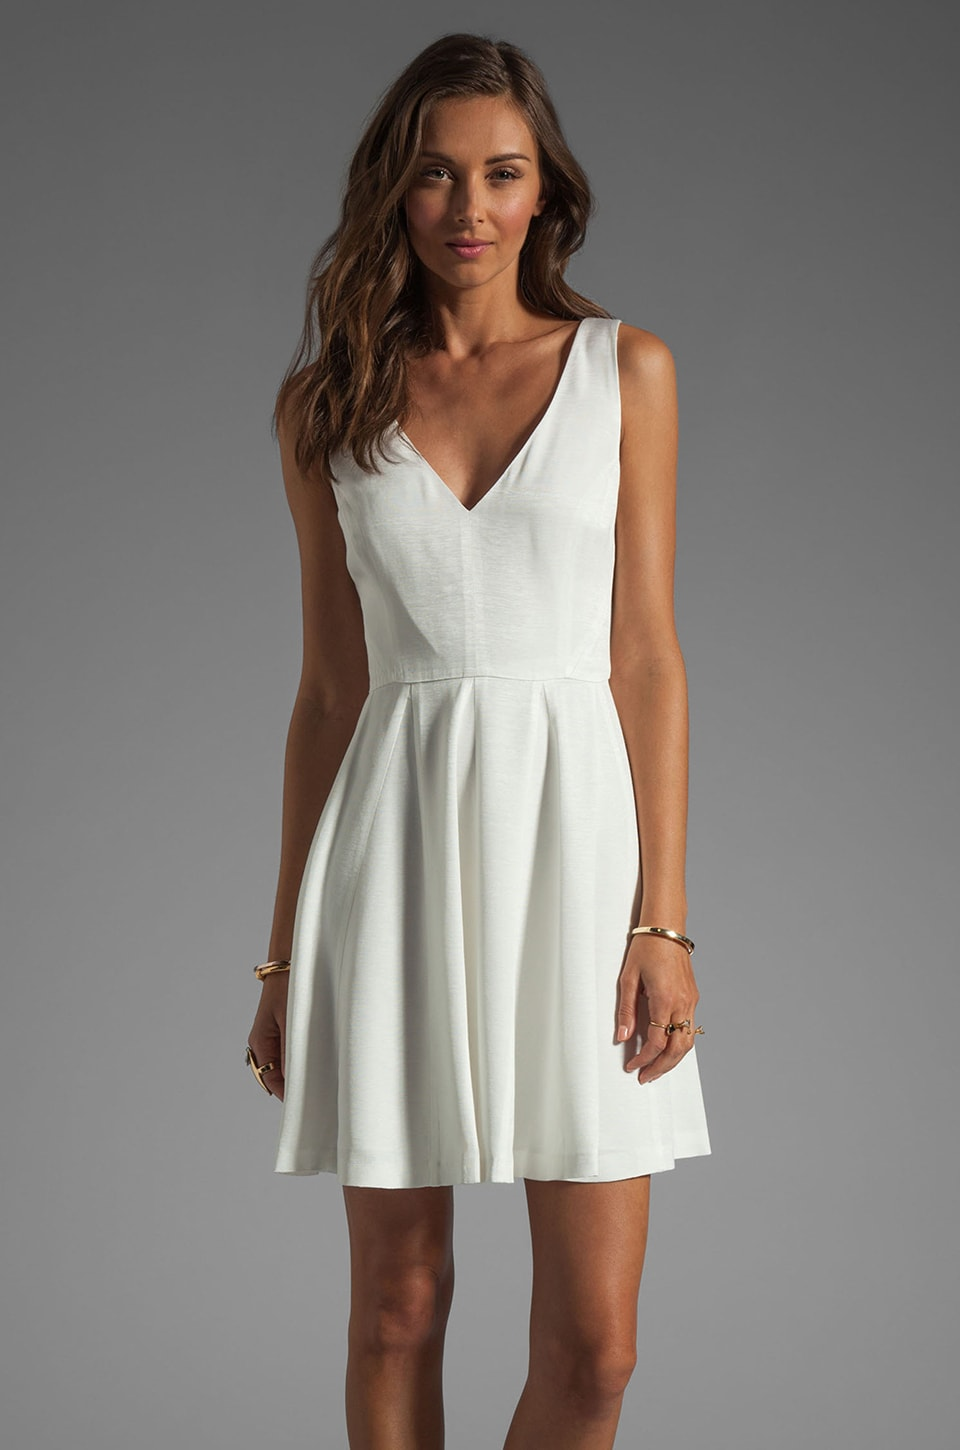 ERIN erin fetherston Soiree Dress in White